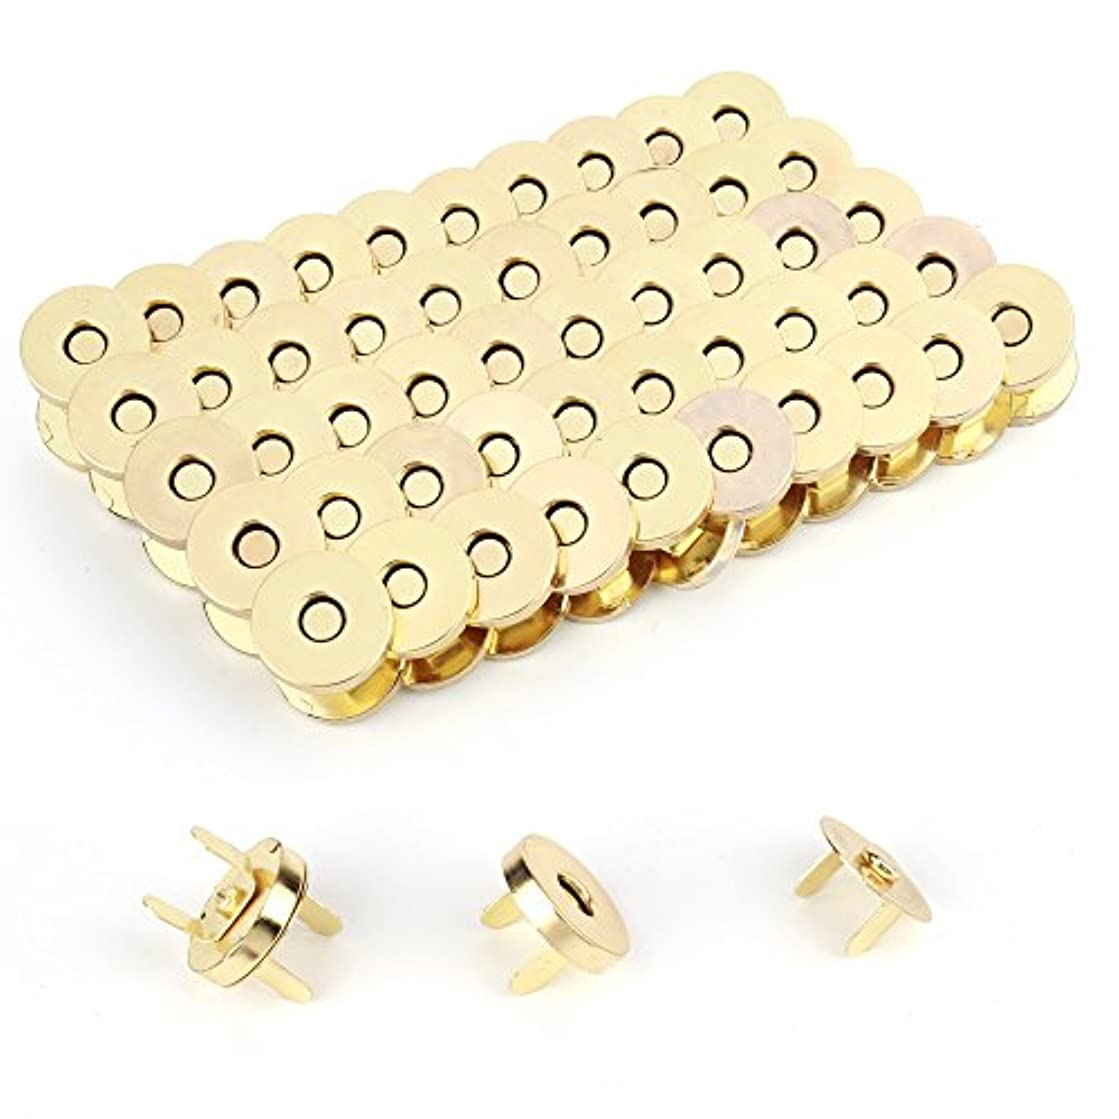 Z-COLOR 100 Sets Tone Magnetic Buttons Snap Clasps For Handbag Purses, DIY Accessories,Bags, Jackets, Covers etc (18mm, Gold)